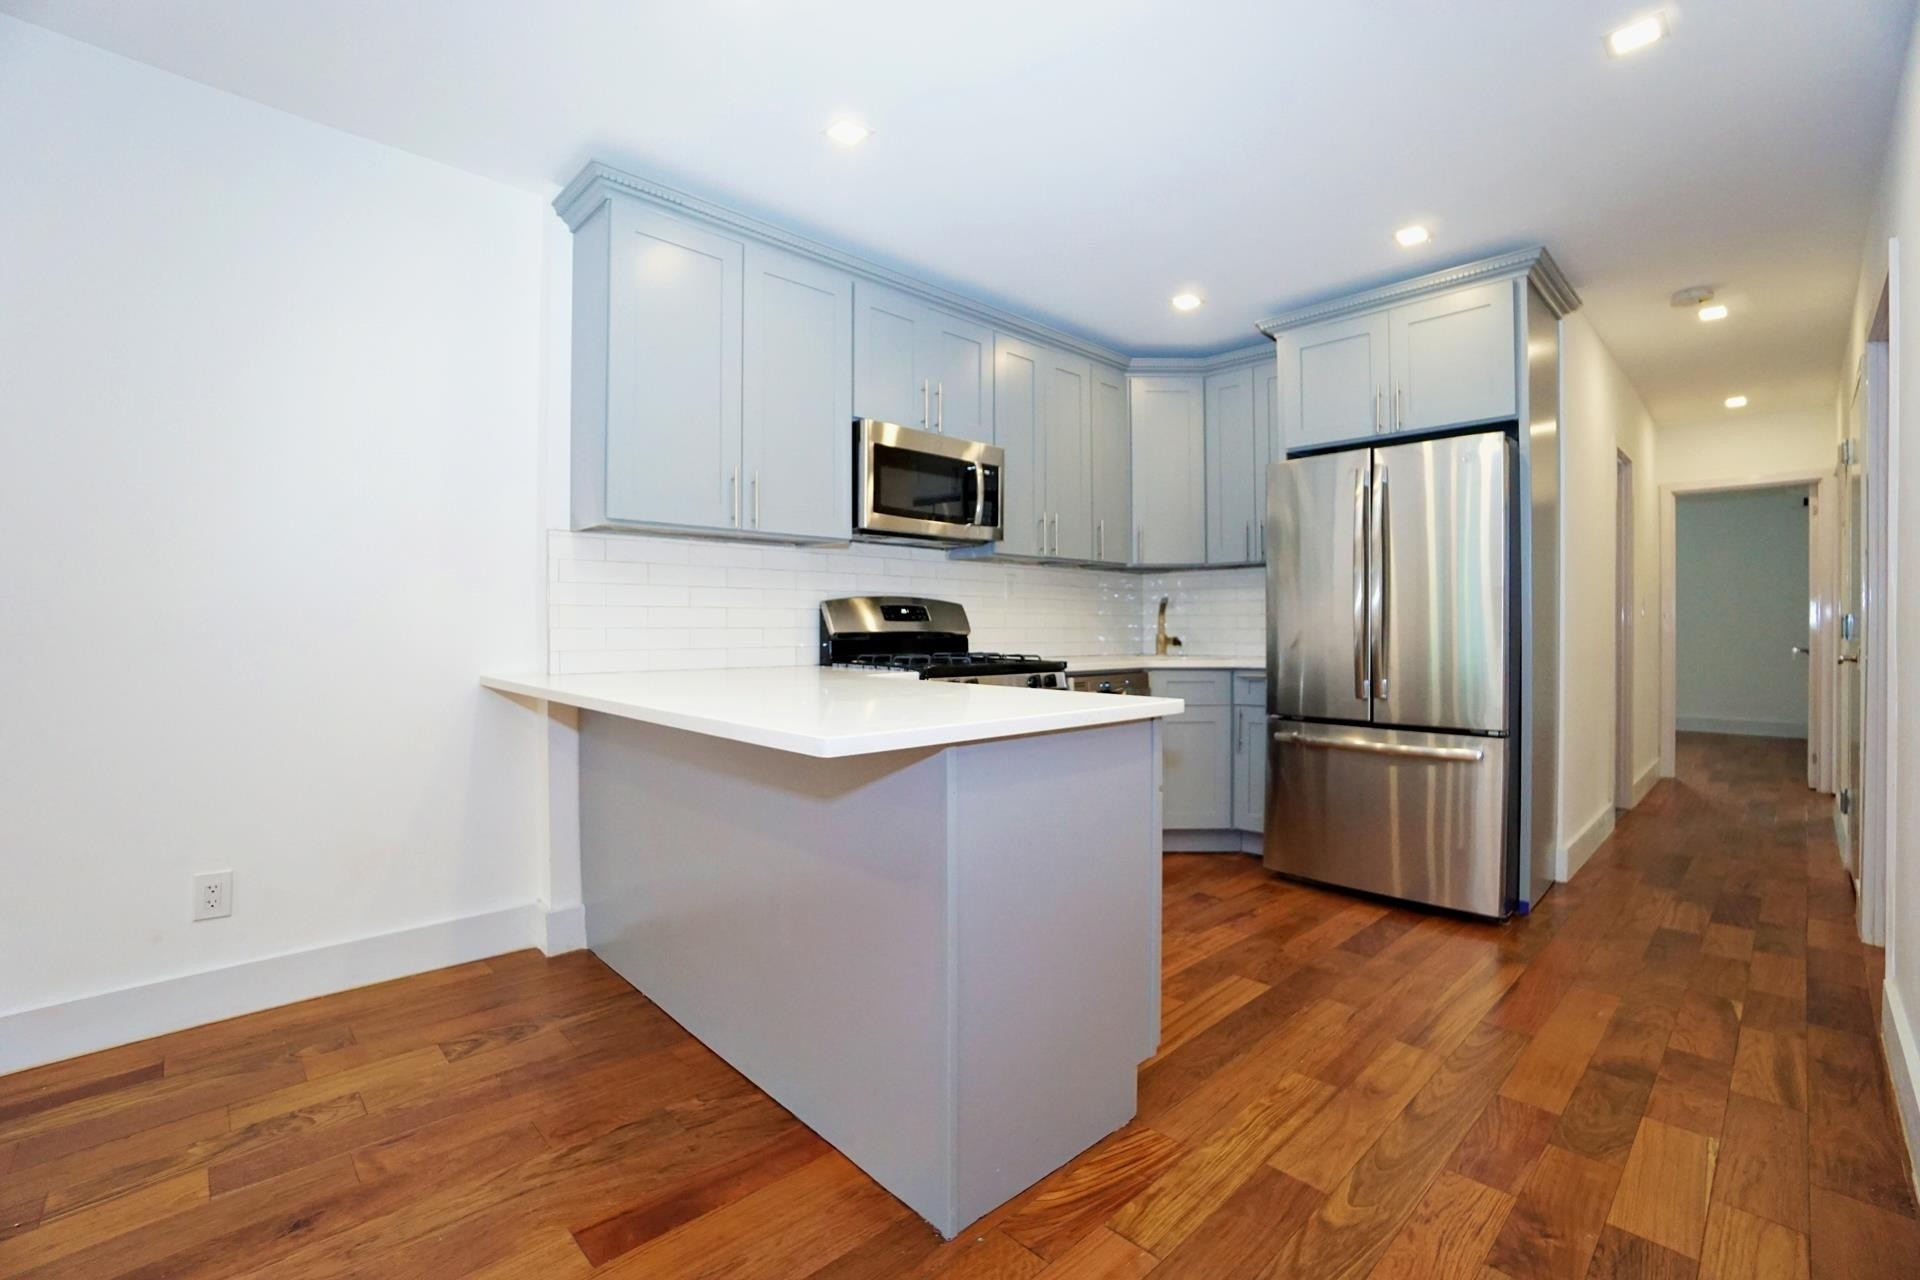 Multi Family Townhouse for Sale at 139 ALBANY AVE , TOWNHOUSE Crown Heights, Brooklyn, NY 11213